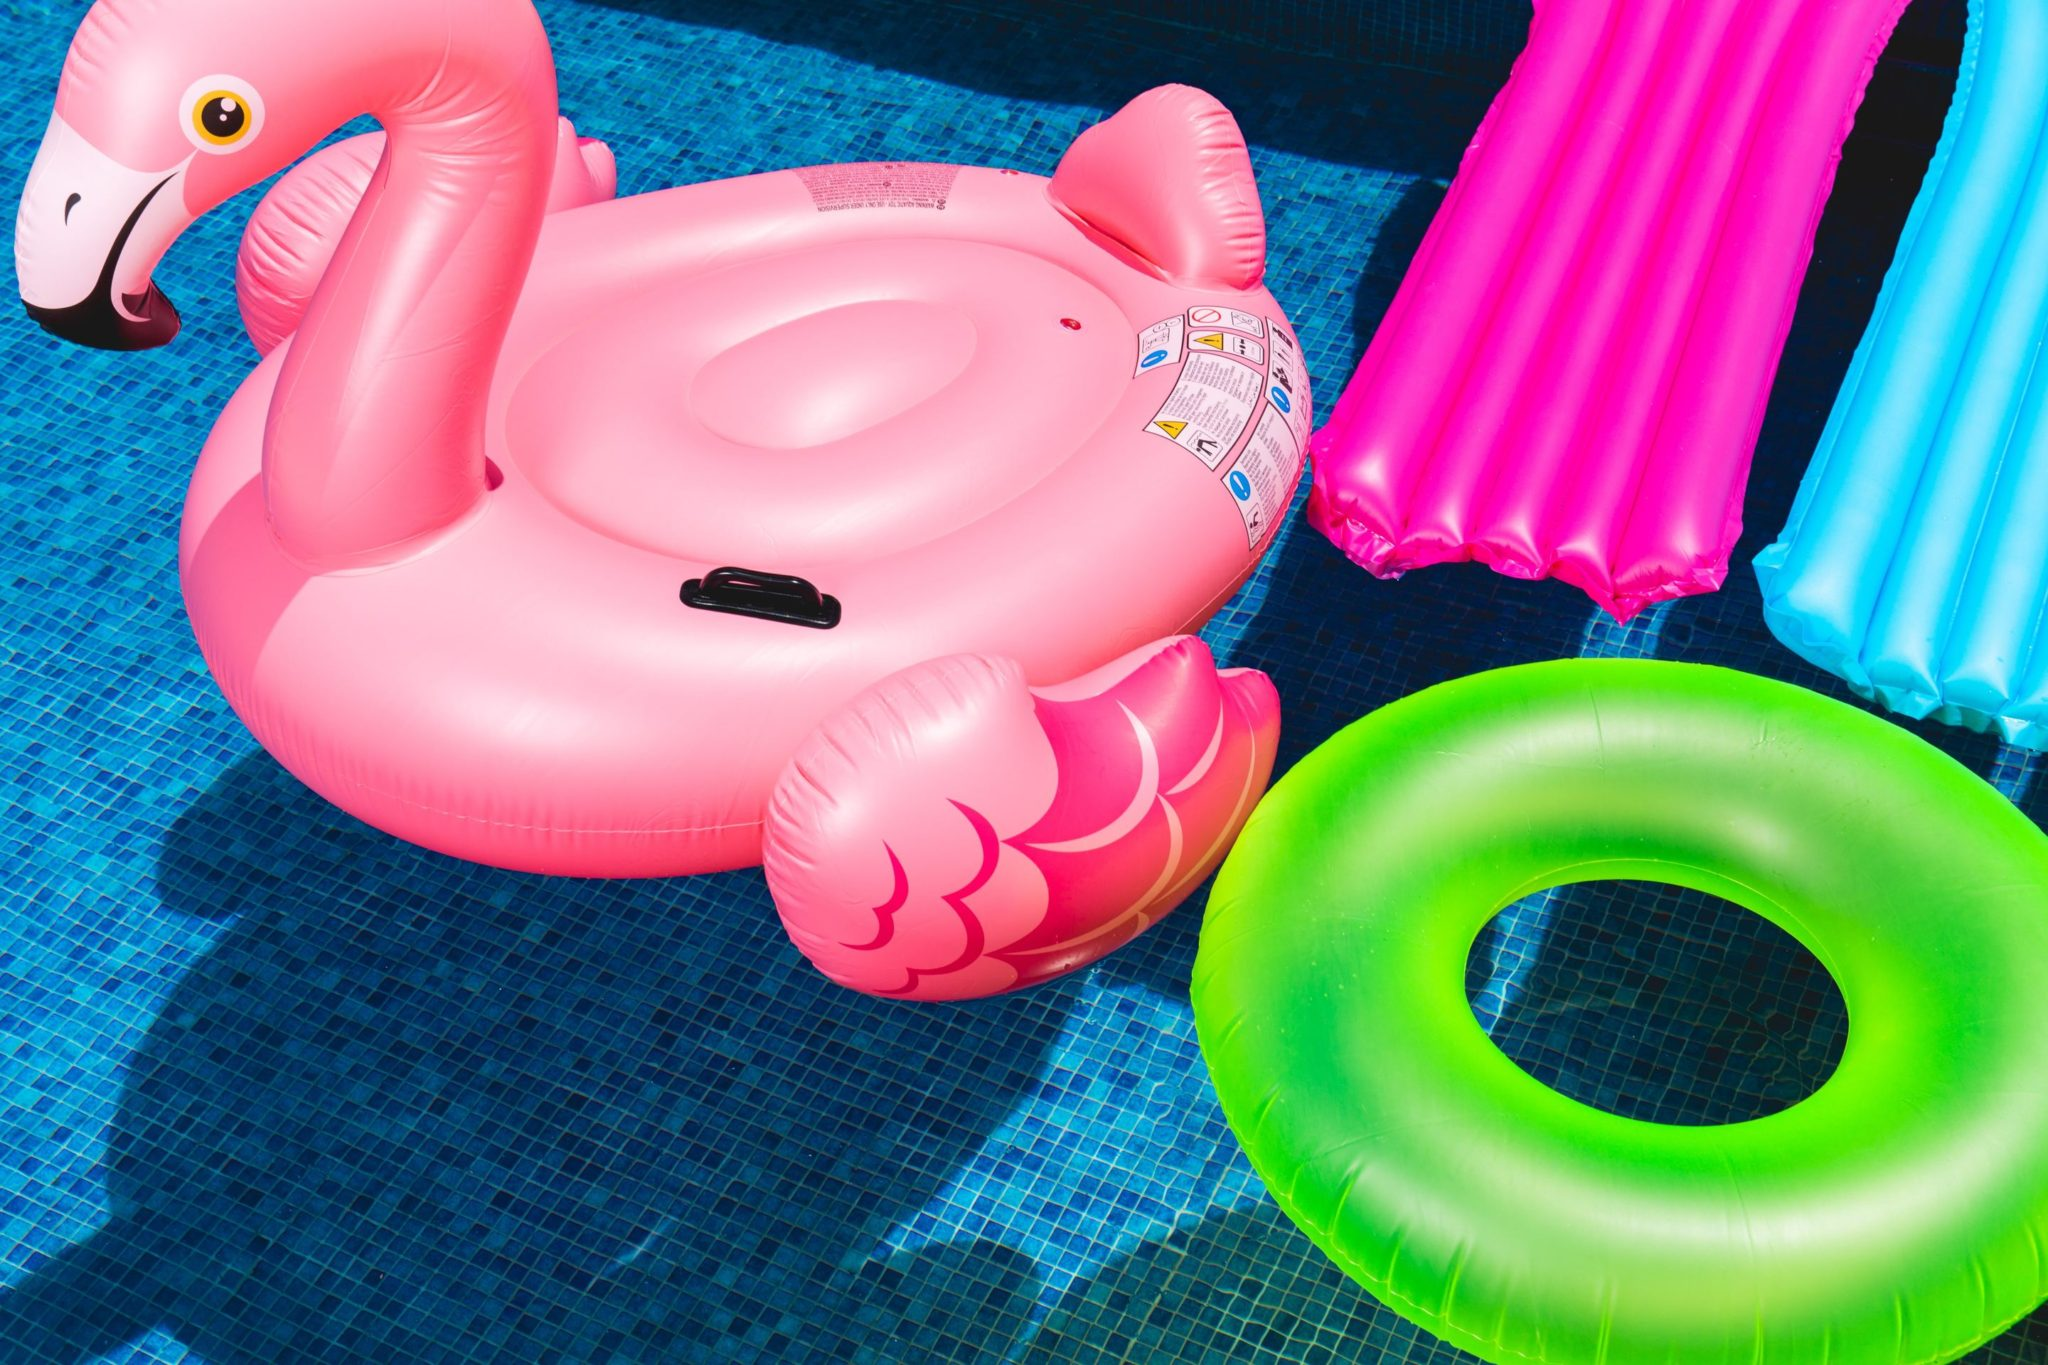 Pepsi Kicks Off Summer with Instagram AR Filters, 6-Story Inflatable Flamingo